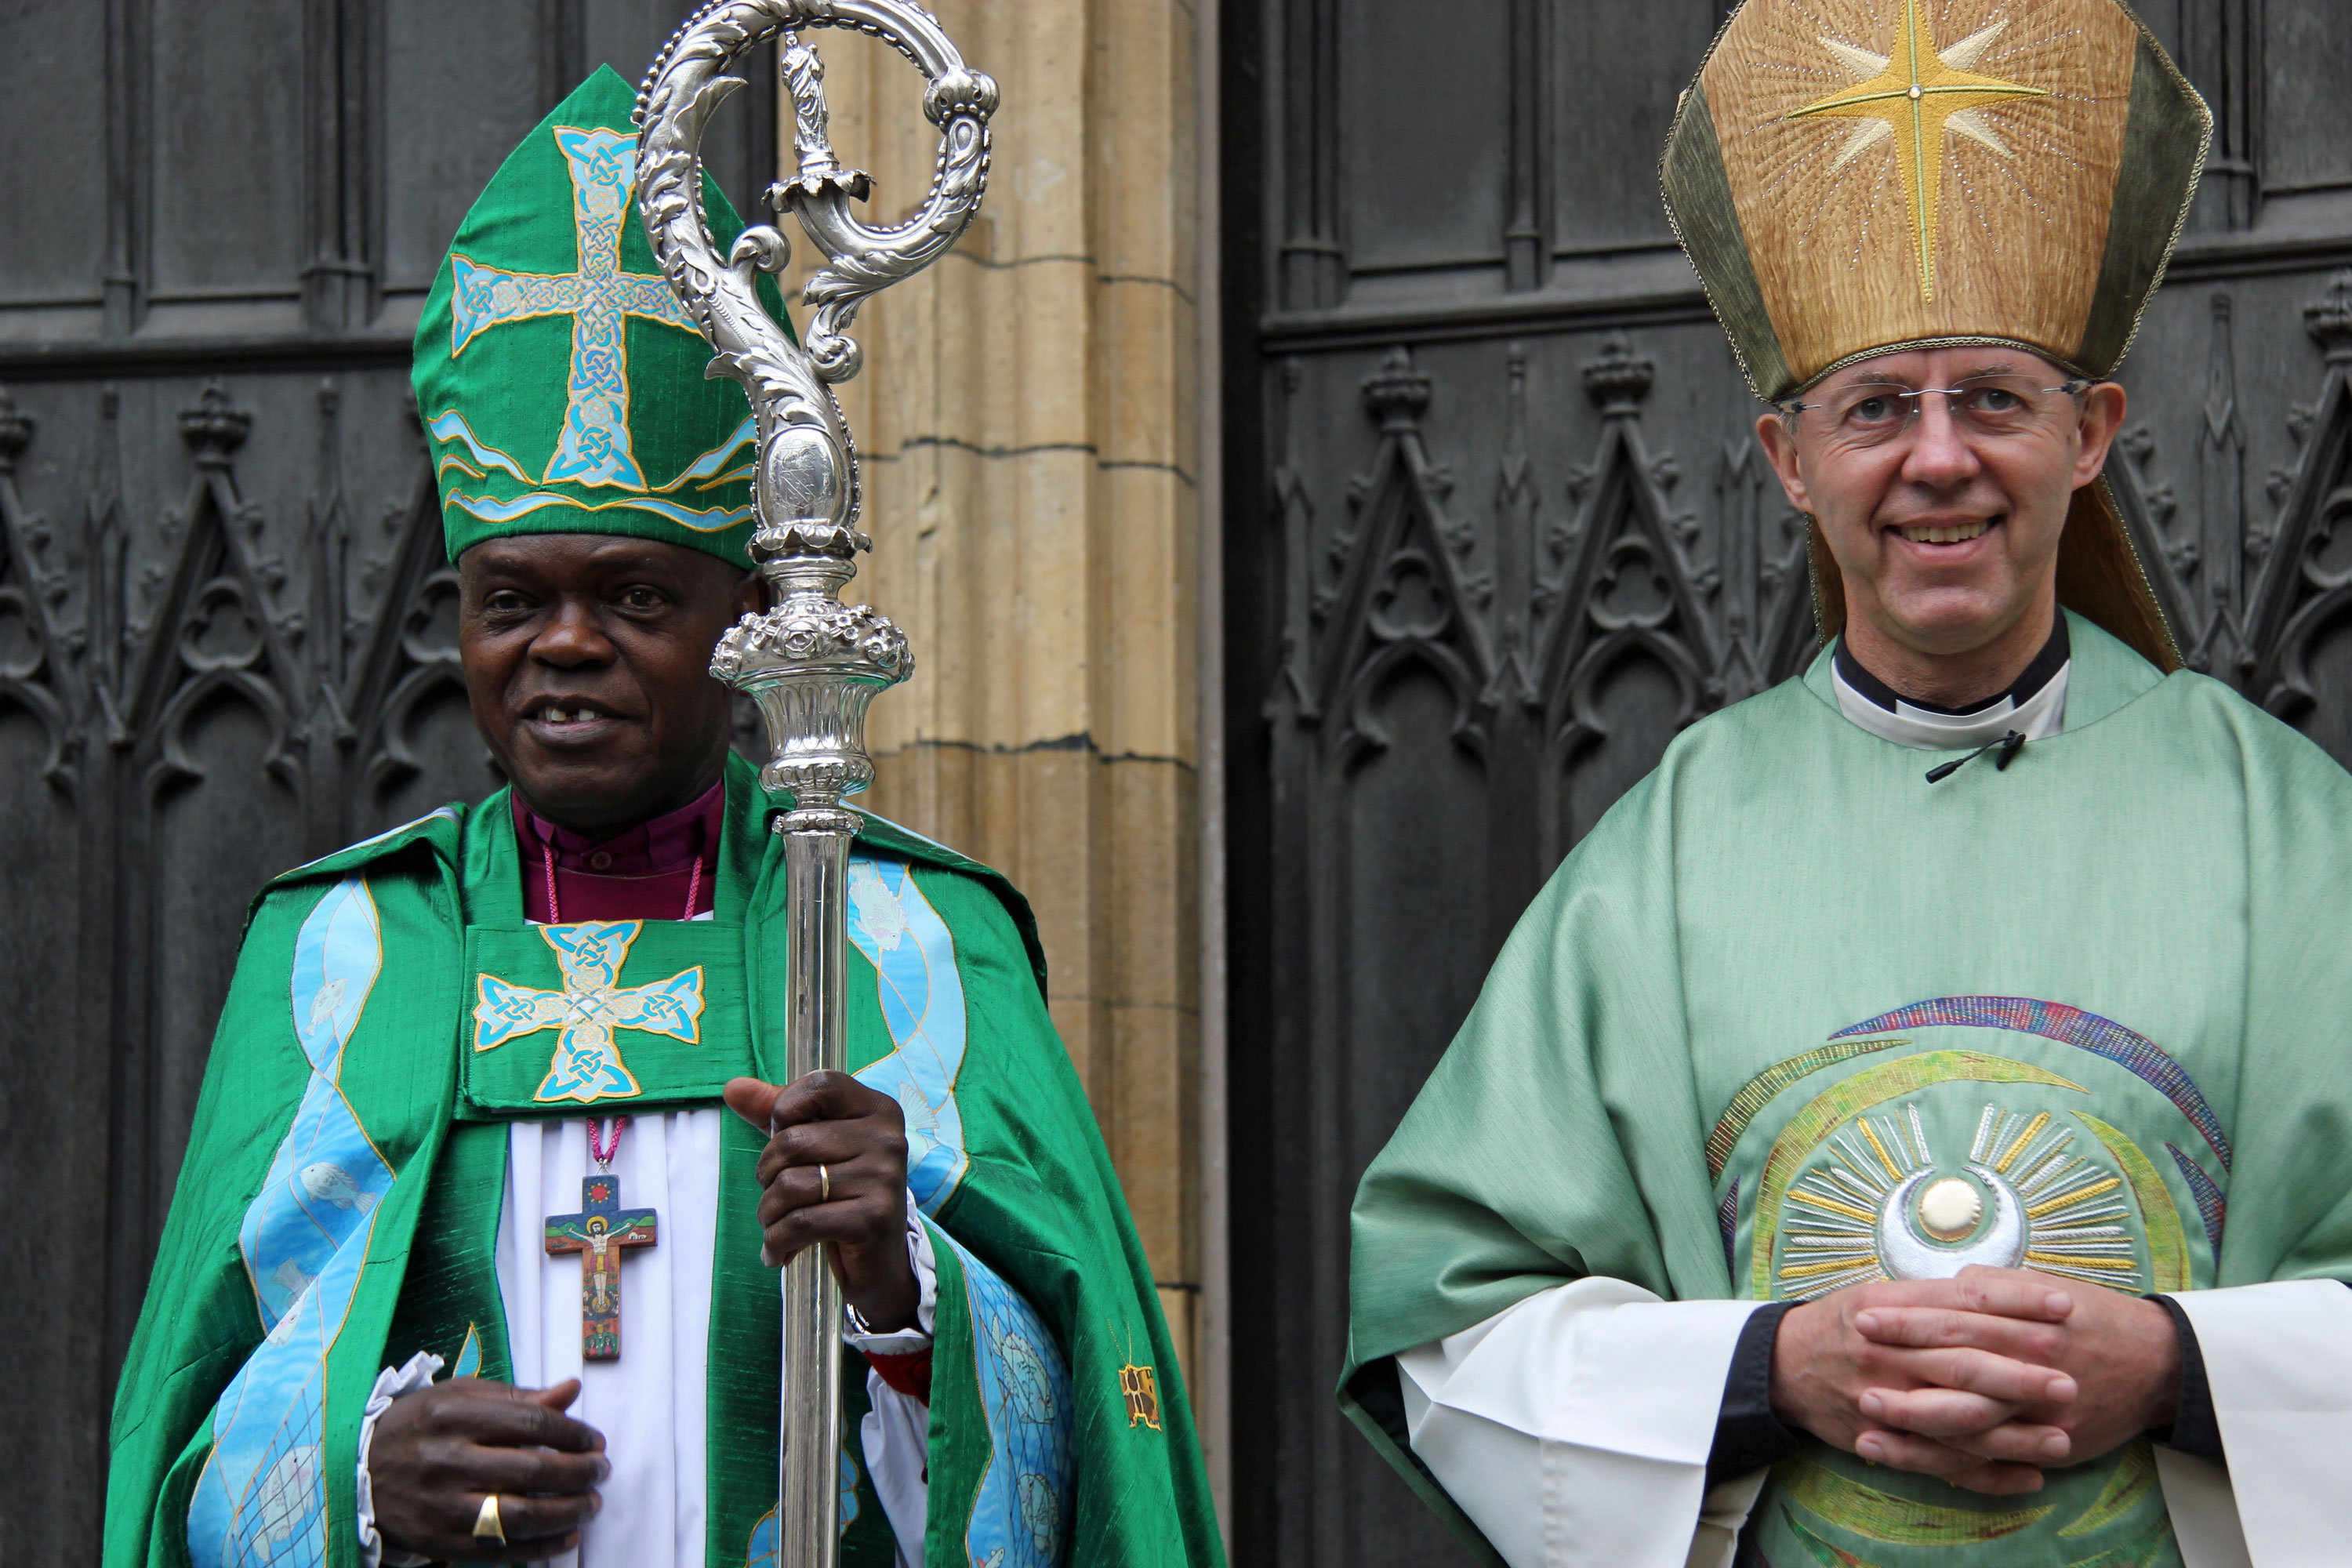 Archbishop John Sentamu and Archbishop Justin Welby